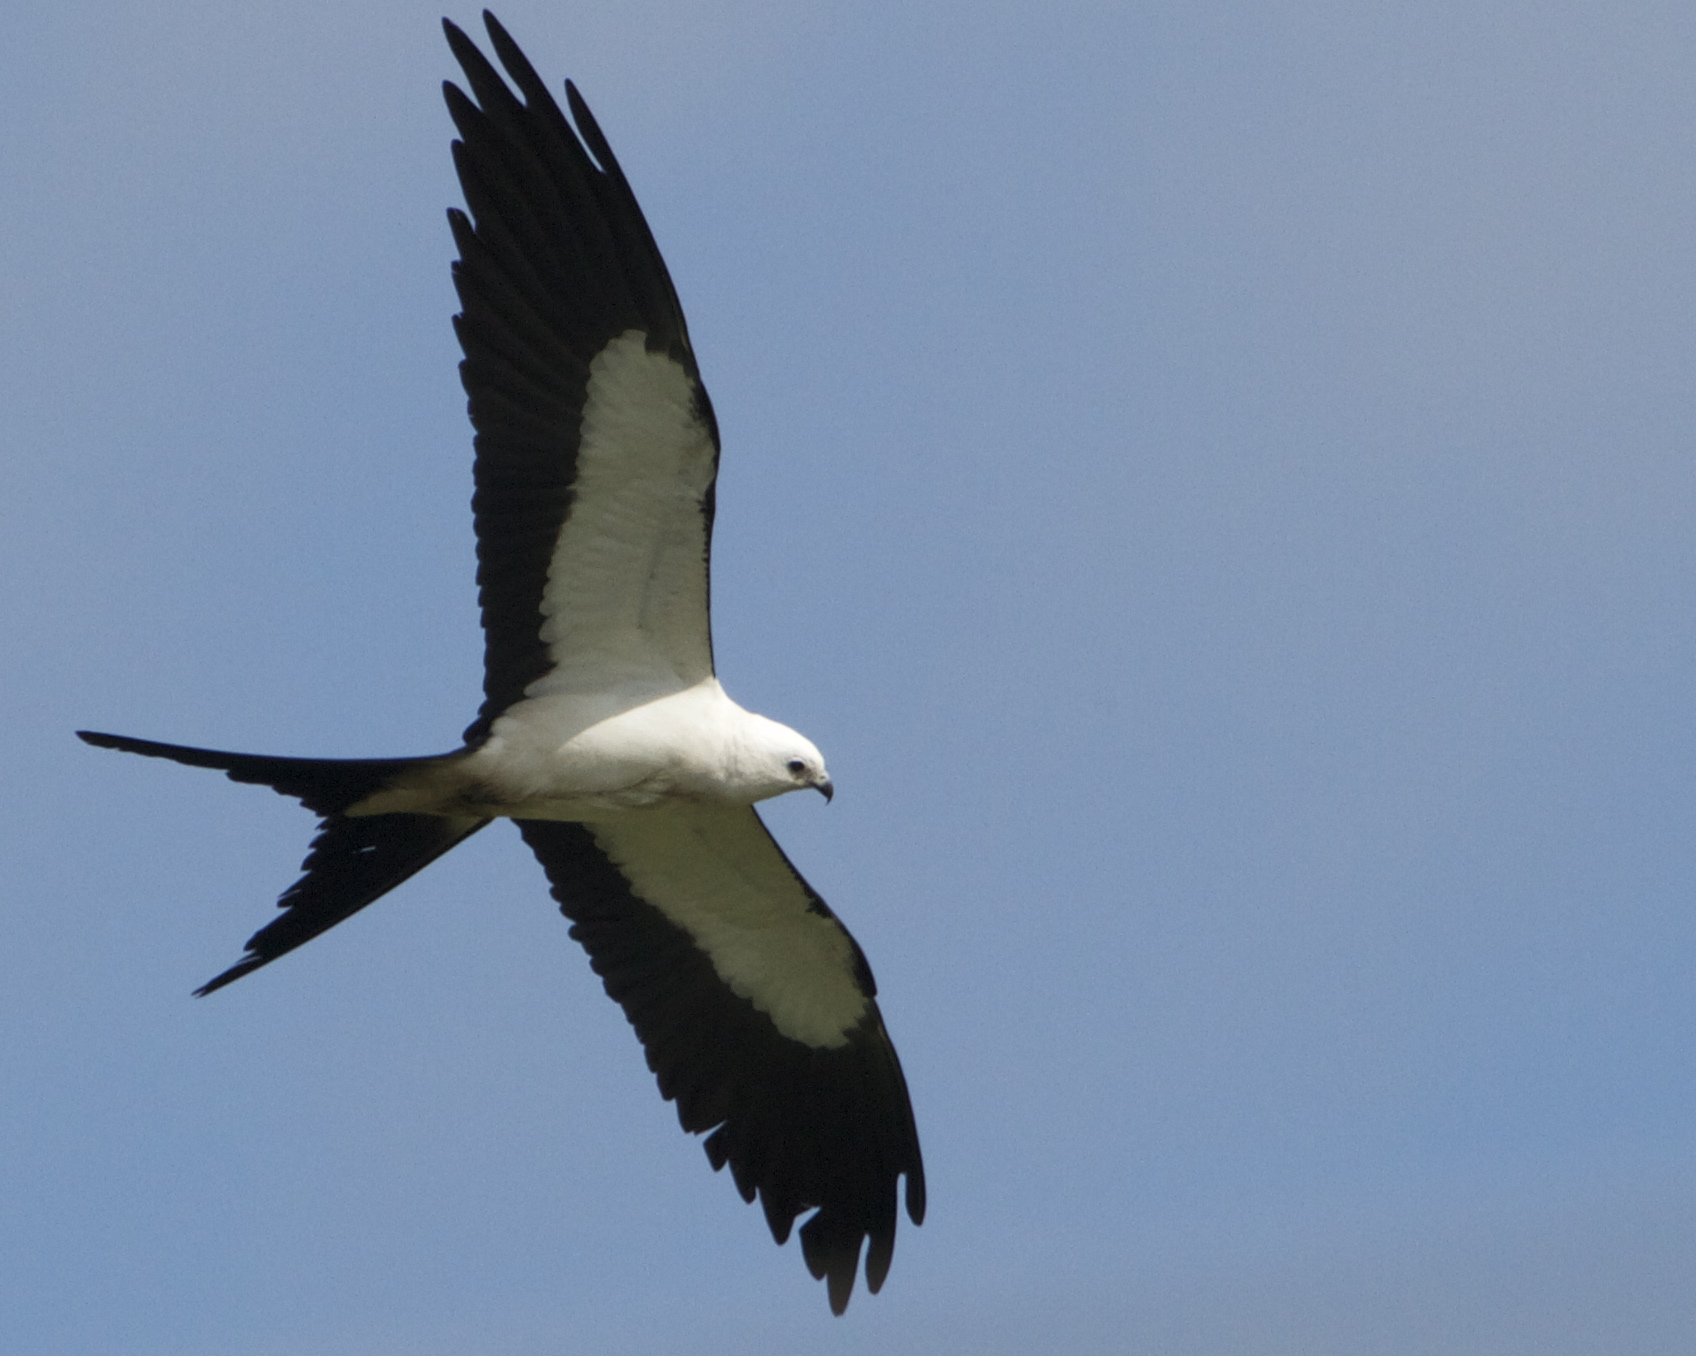 The Swallow-tailed Kite uses its forked tail like a rudder and rarely flaps its wings in flight.